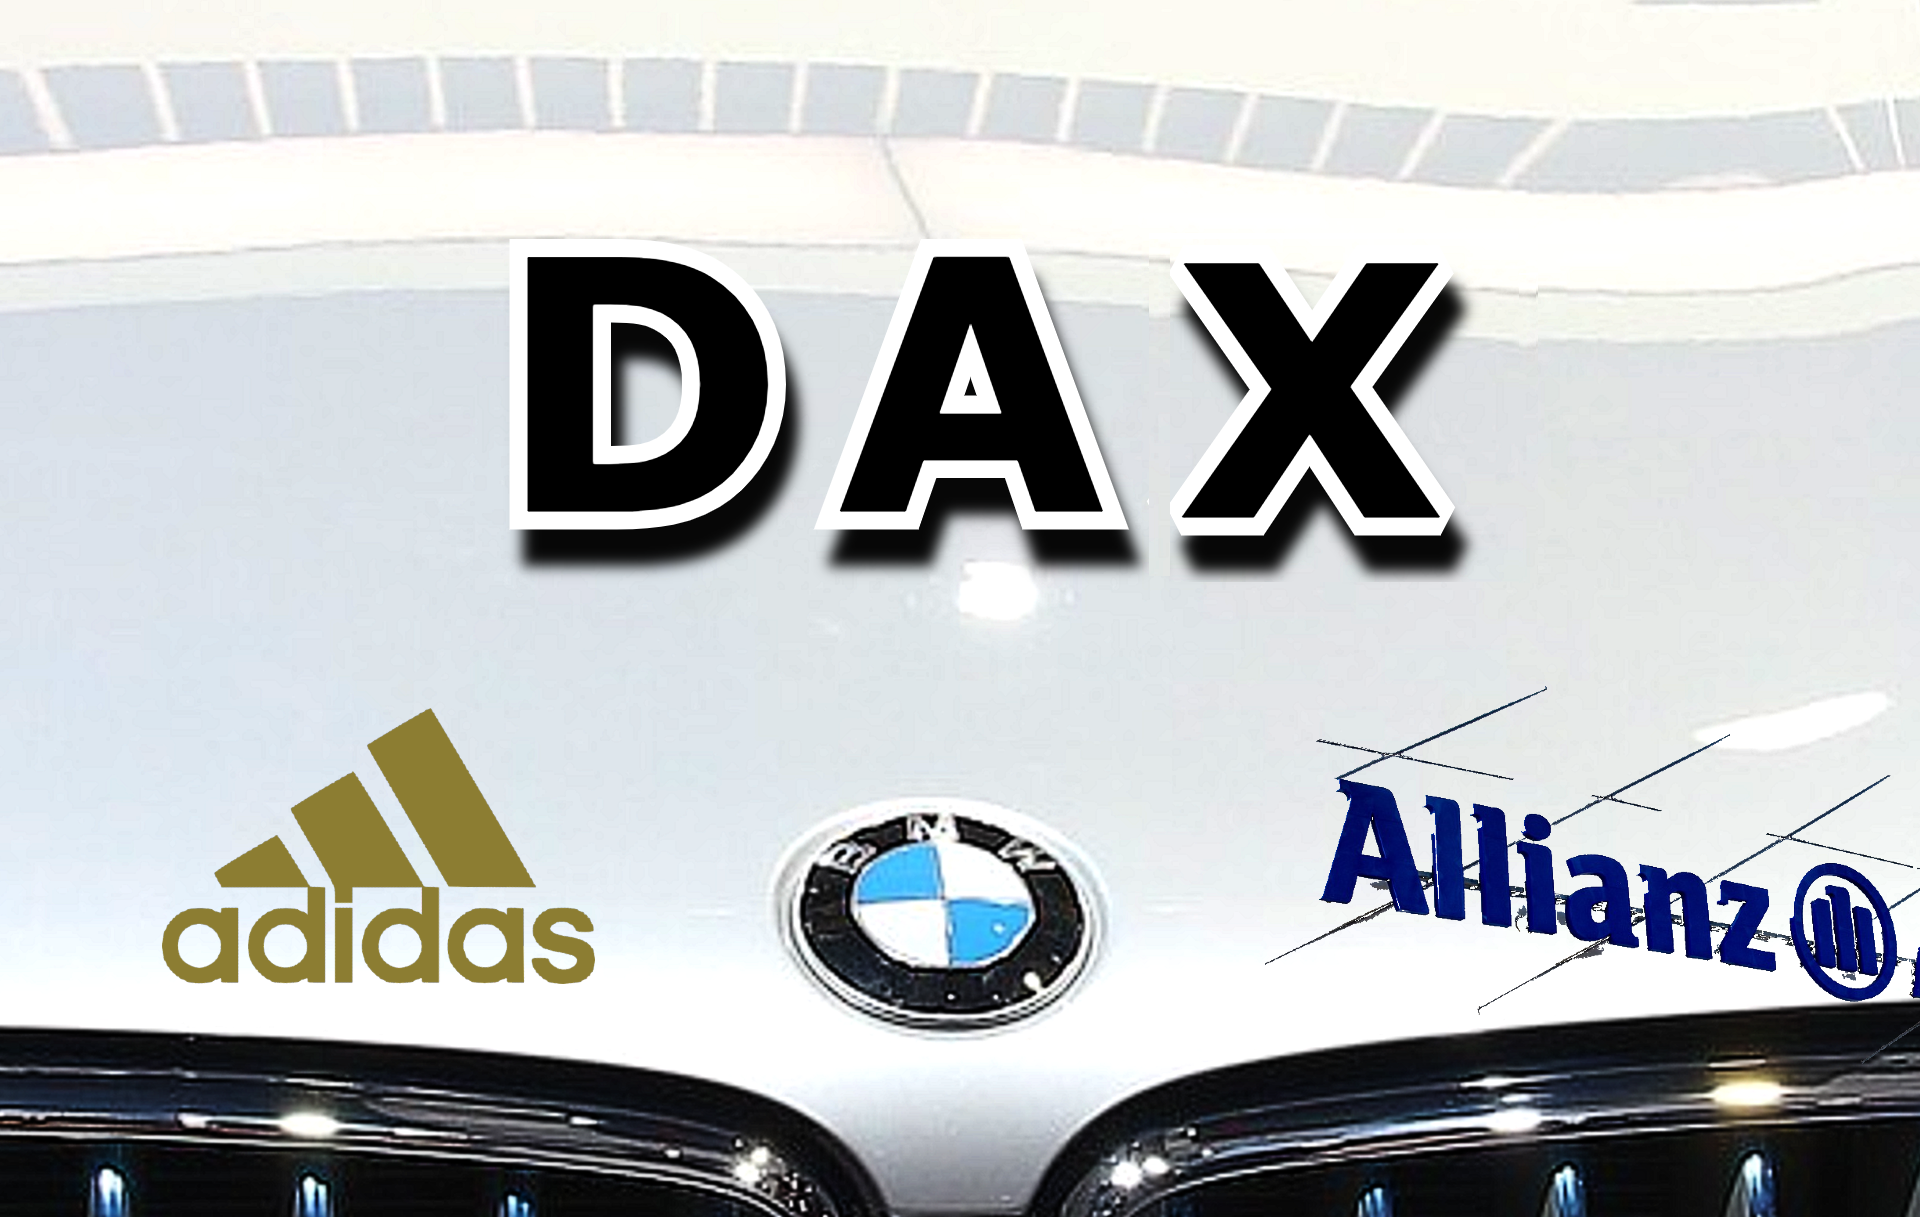 Co je to DAX